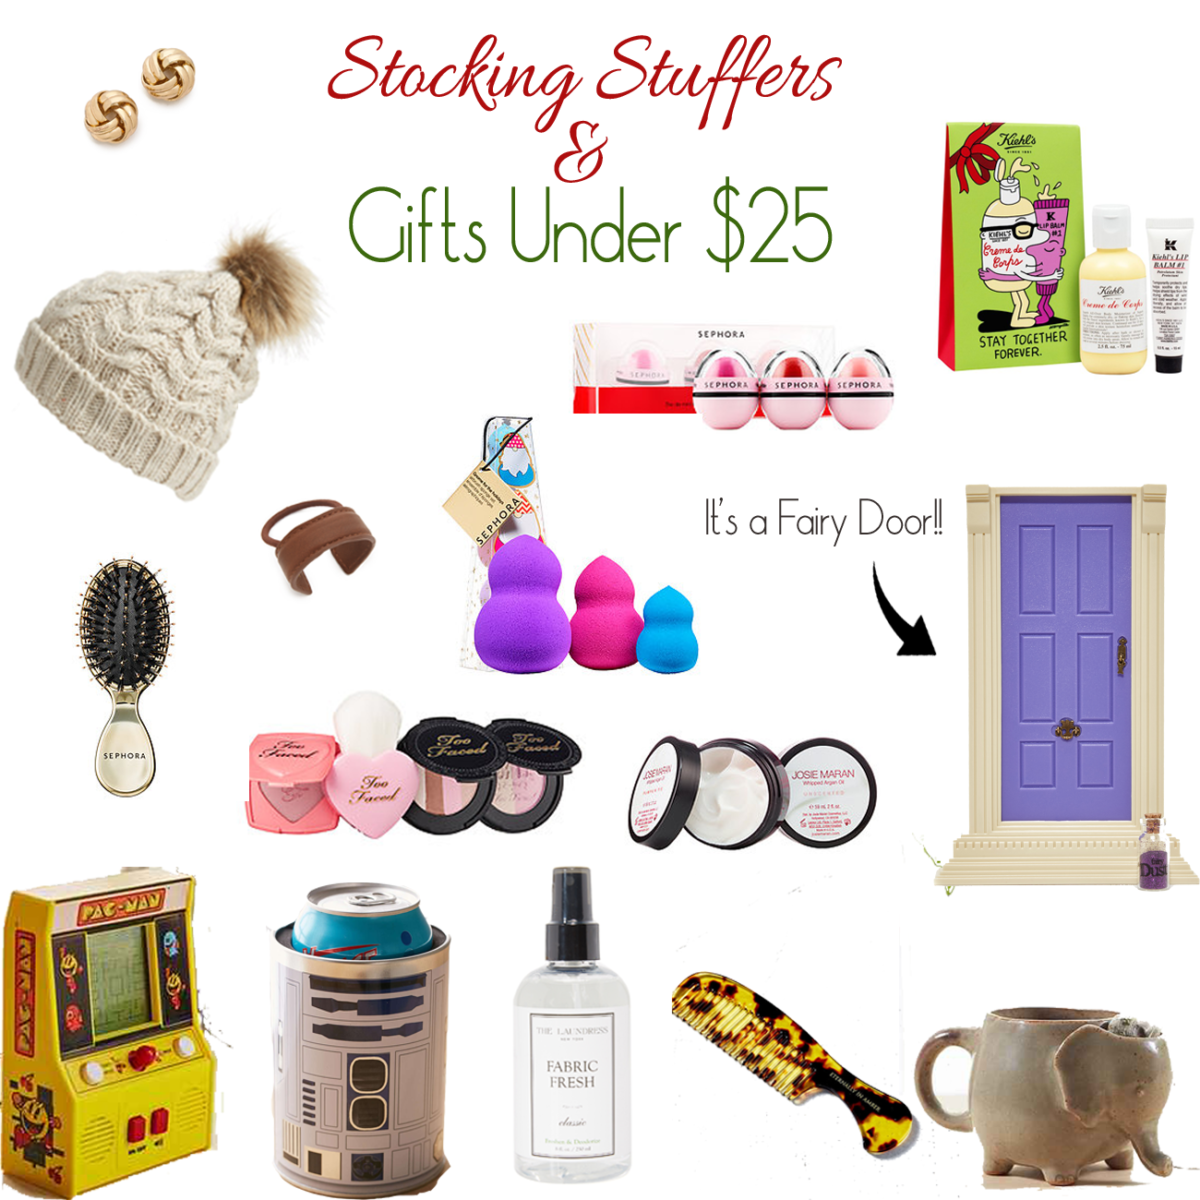 Stocking suffers and gifts for under $25 that would be perfect for anyone on your list